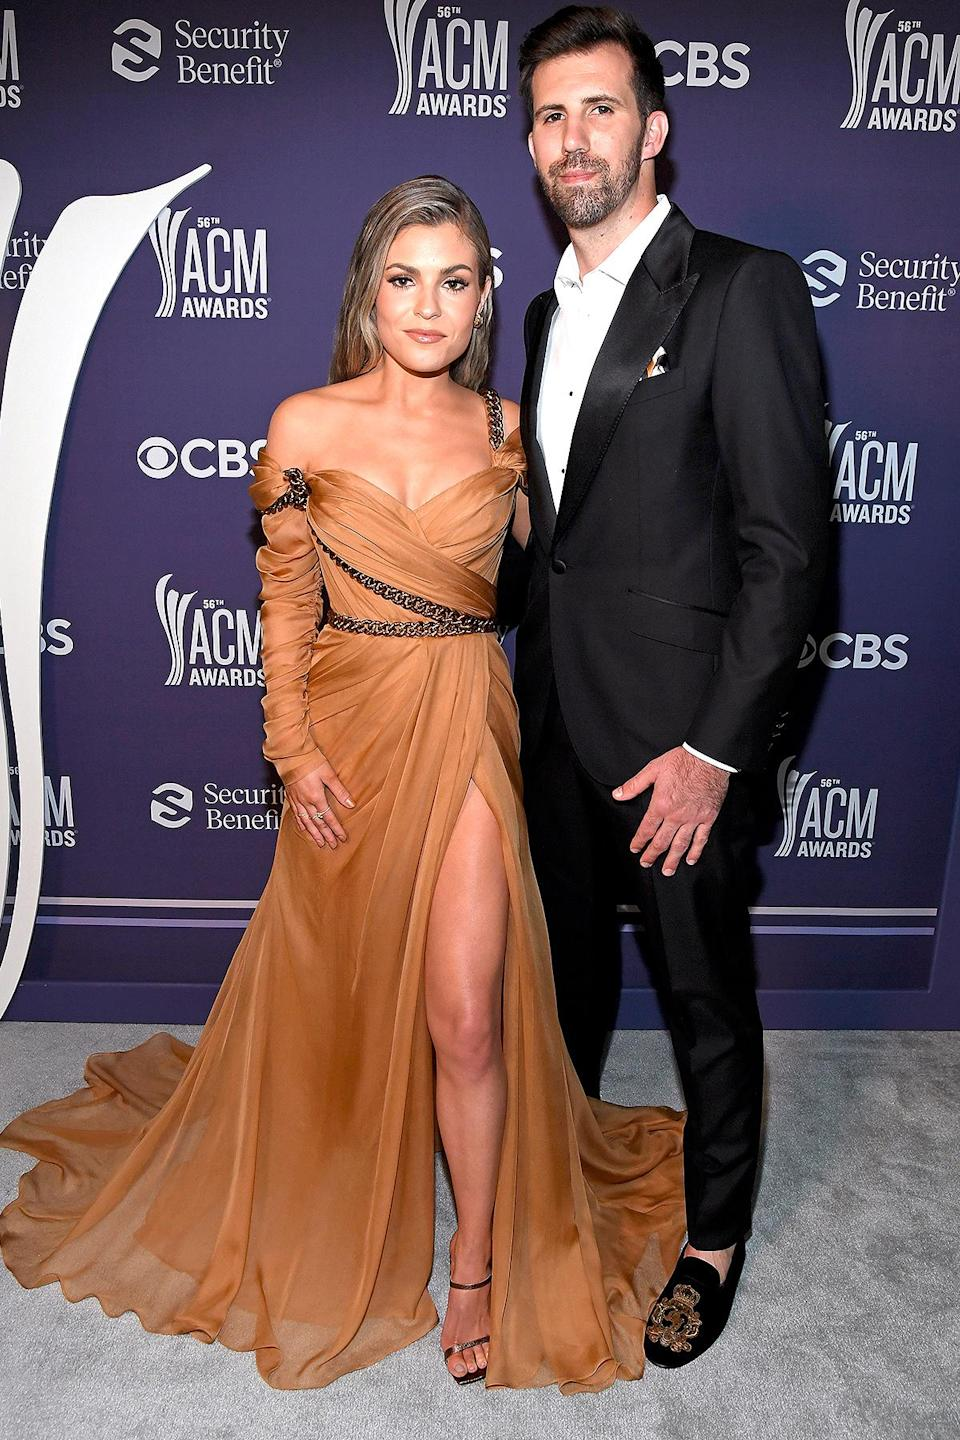 "<p>Canadian country singer Arts was excited to attend her first-ever ACM Awards with her love. ""I can't even handle getting to wear this dress,"" <a href=""https://www.instagram.com/p/CN0piSrnhSw/"" rel=""nofollow noopener"" target=""_blank"" data-ylk=""slk:she wrote on Instagram"" class=""link rapid-noclick-resp"">she wrote on Instagram</a> of her custom Dolce & Gabbana gown. </p>"